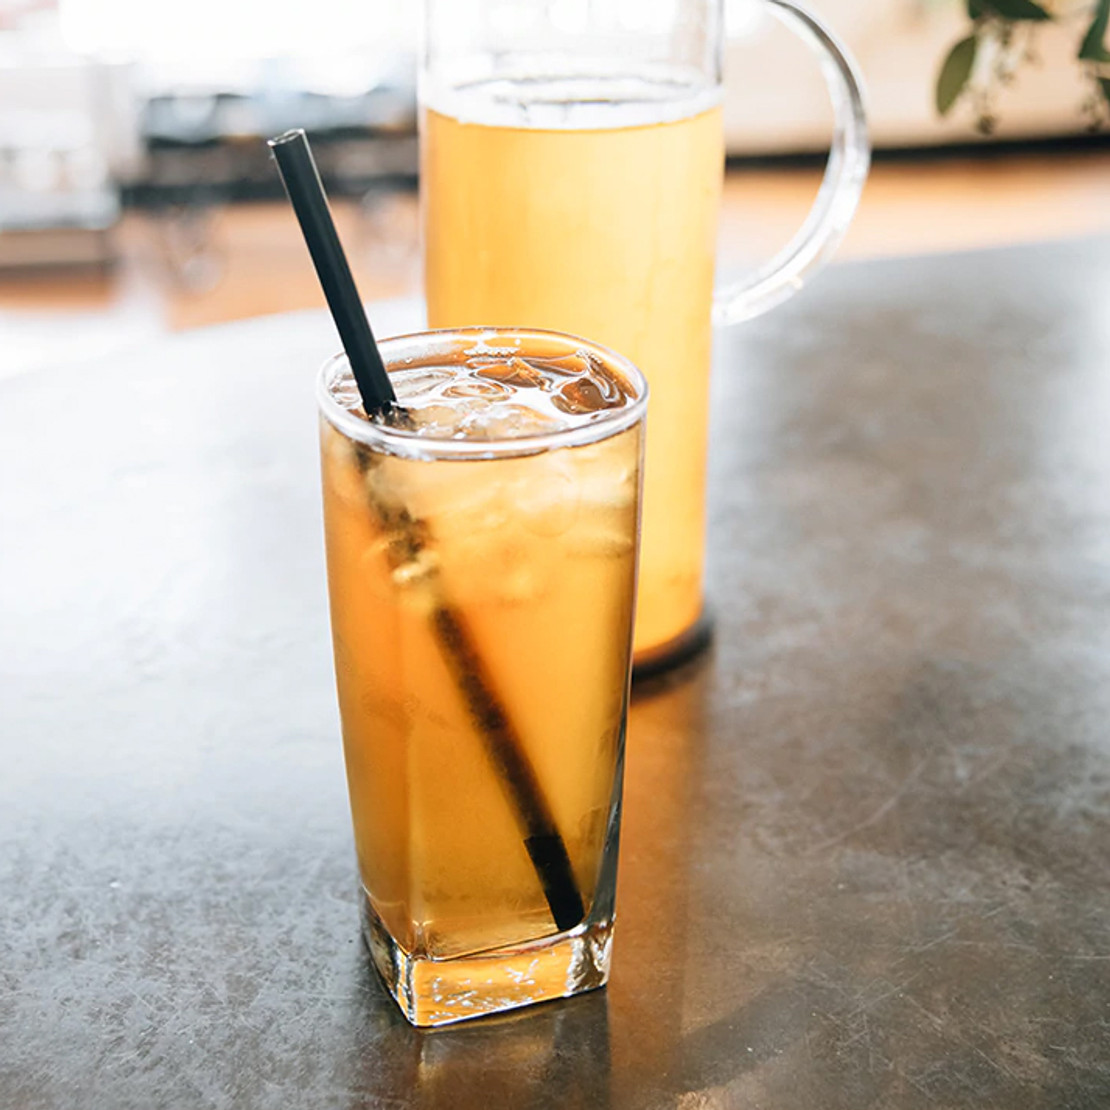 National Iced Tea Month: America's Favorite Way to Enjoy Tea